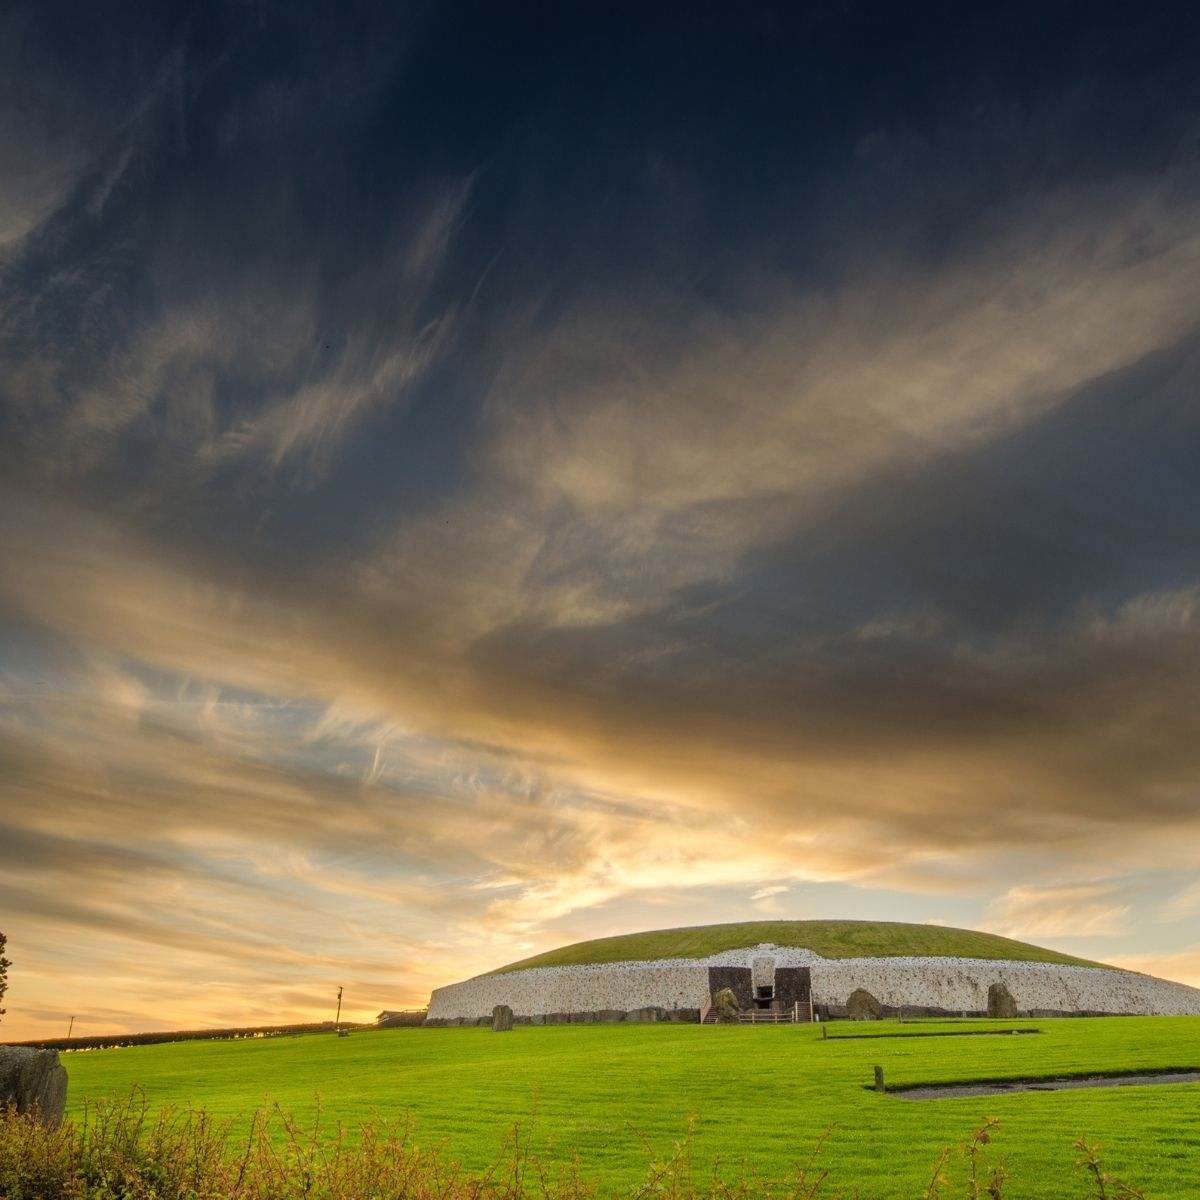 The sun illuminates a large stone burial mound in a green field